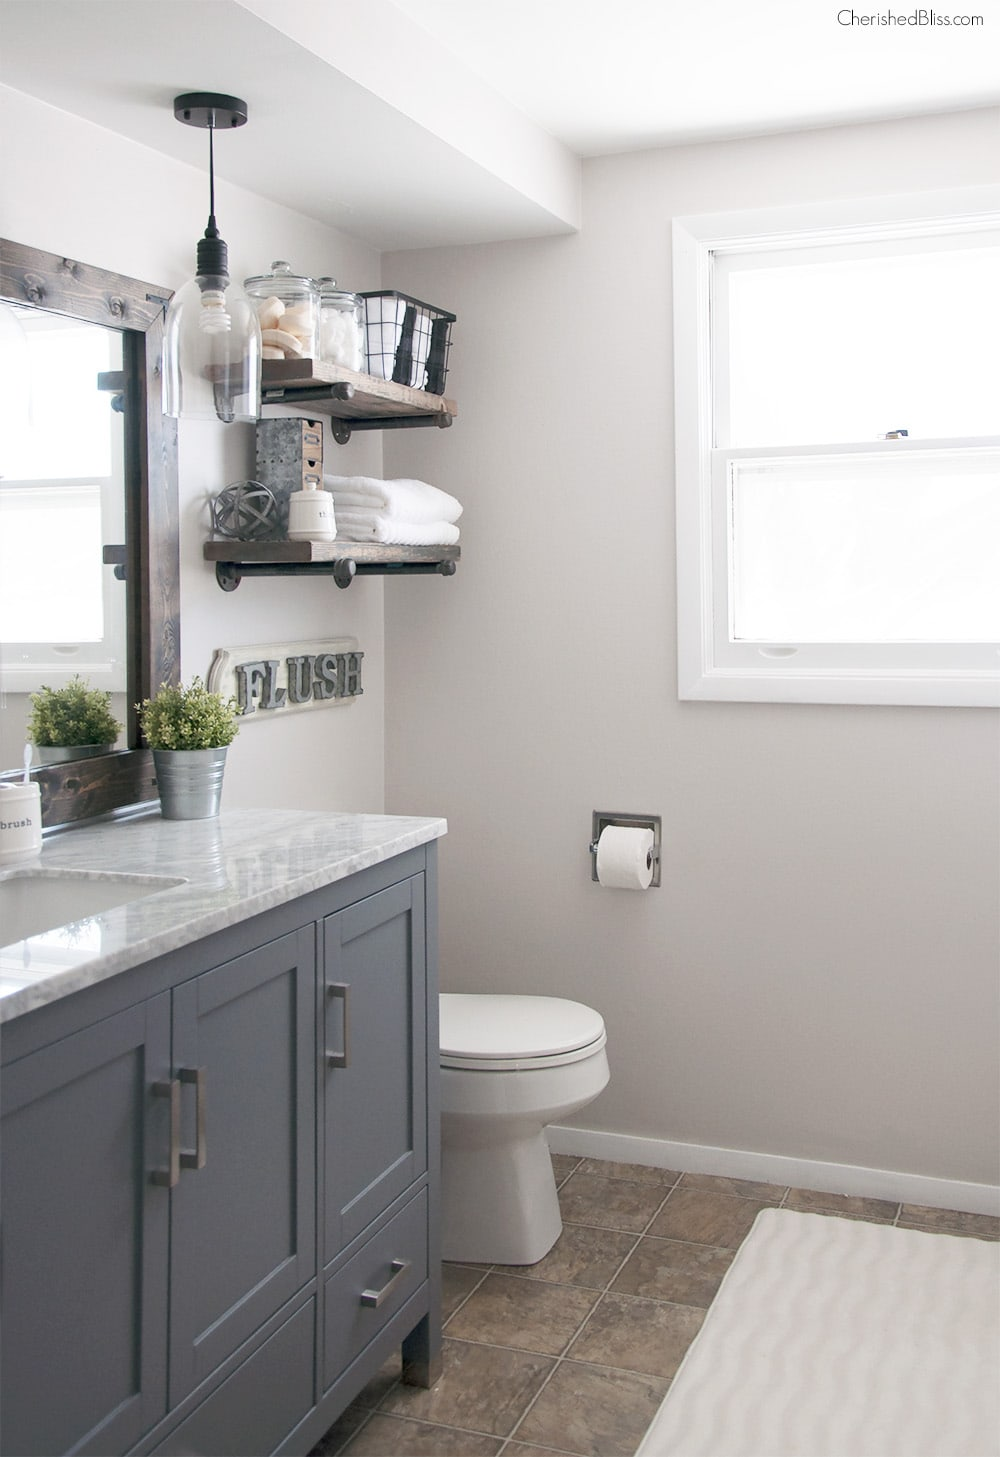 Budget Bathroom Updates Tips To Affordable Bathroom Makeovers - I need to redo my bathroom